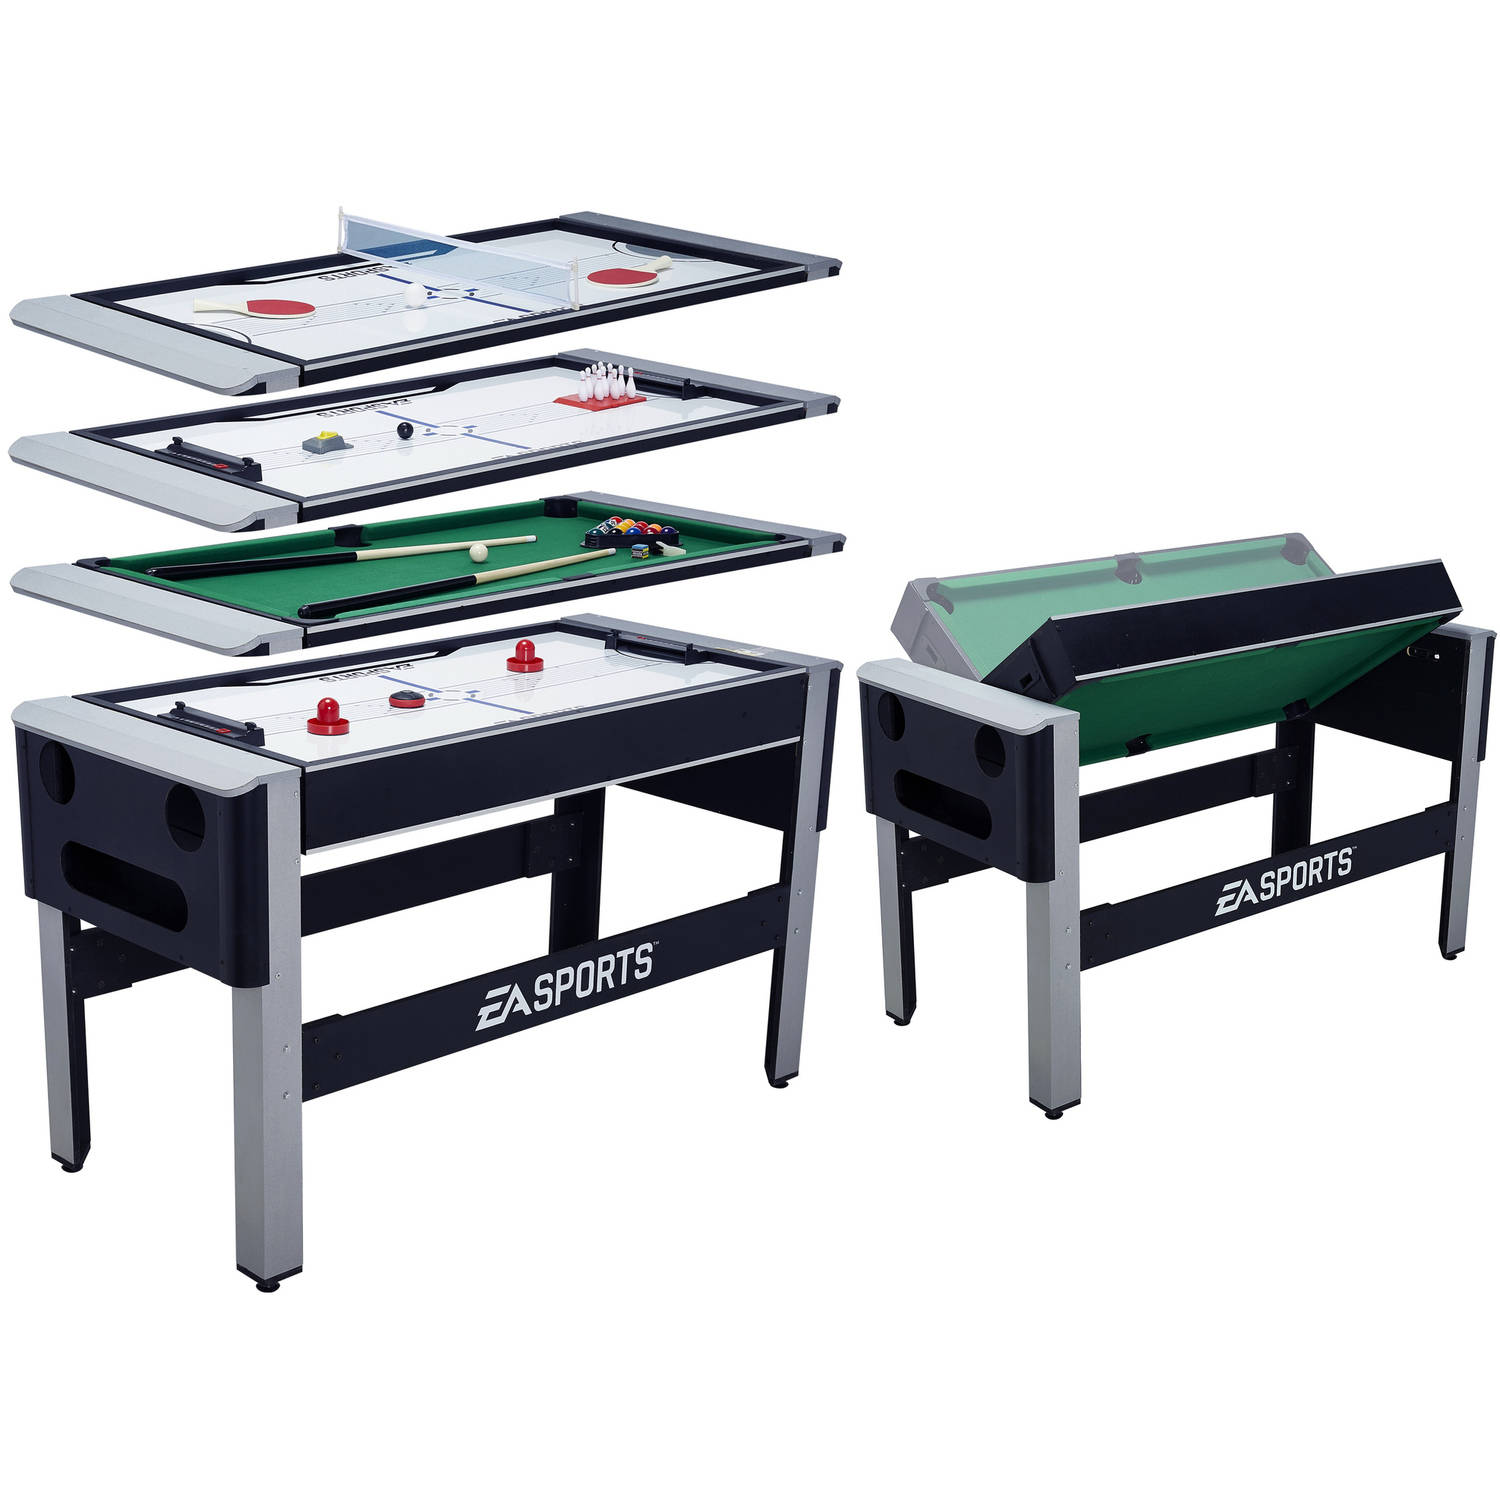 EA SPORTS 54 Inch 4 In 1 Swivel Combo Table   4 Games With Table Tennis,  Hover Hockey, Bowling And Billiard   Walmart.com